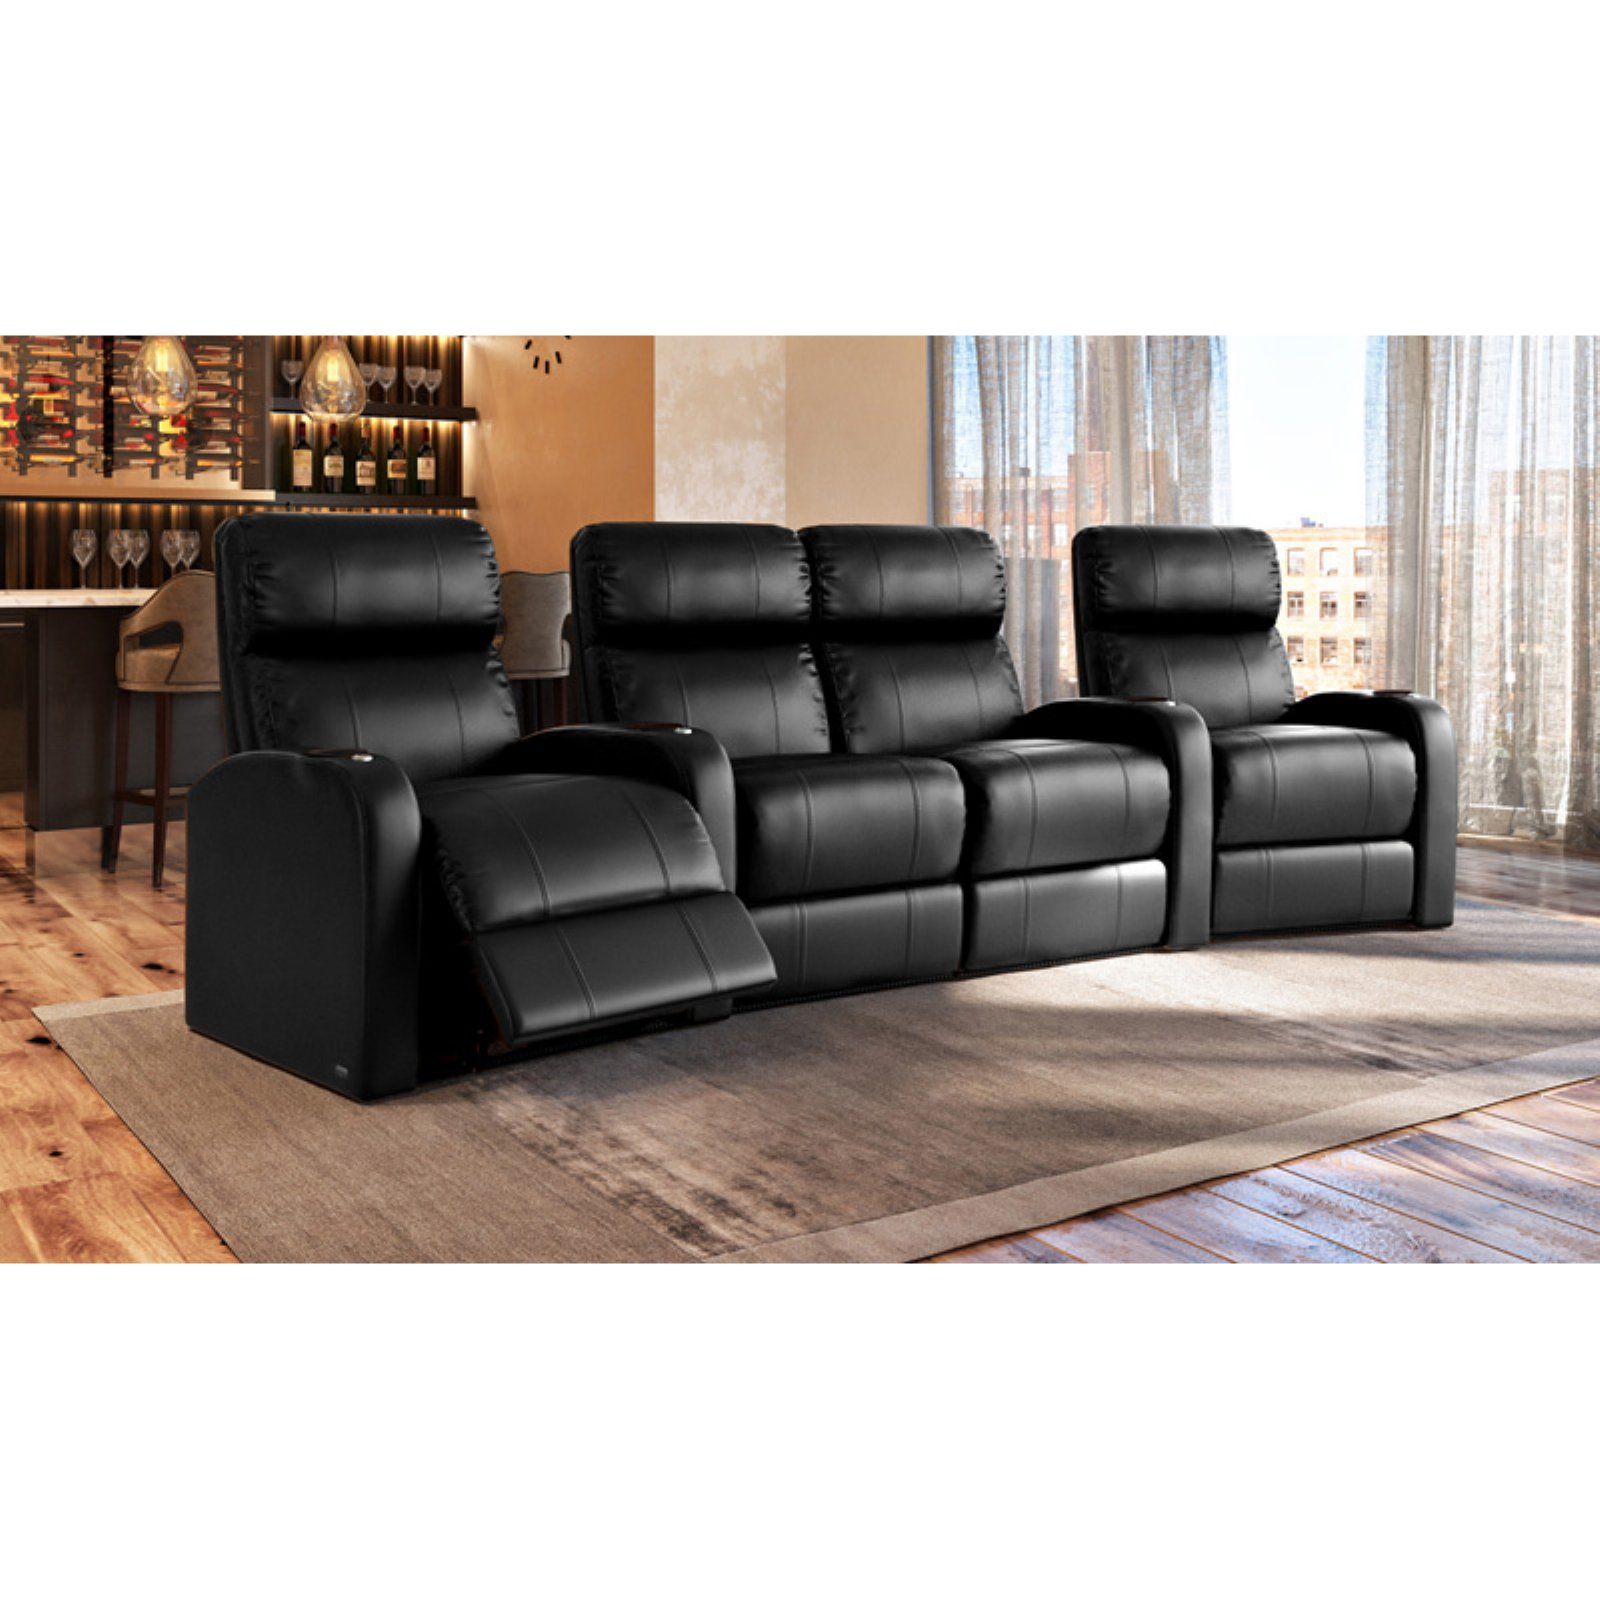 Octane Diesel XS950 4 Seater Middle Loveseat Curved Home Theater Seating